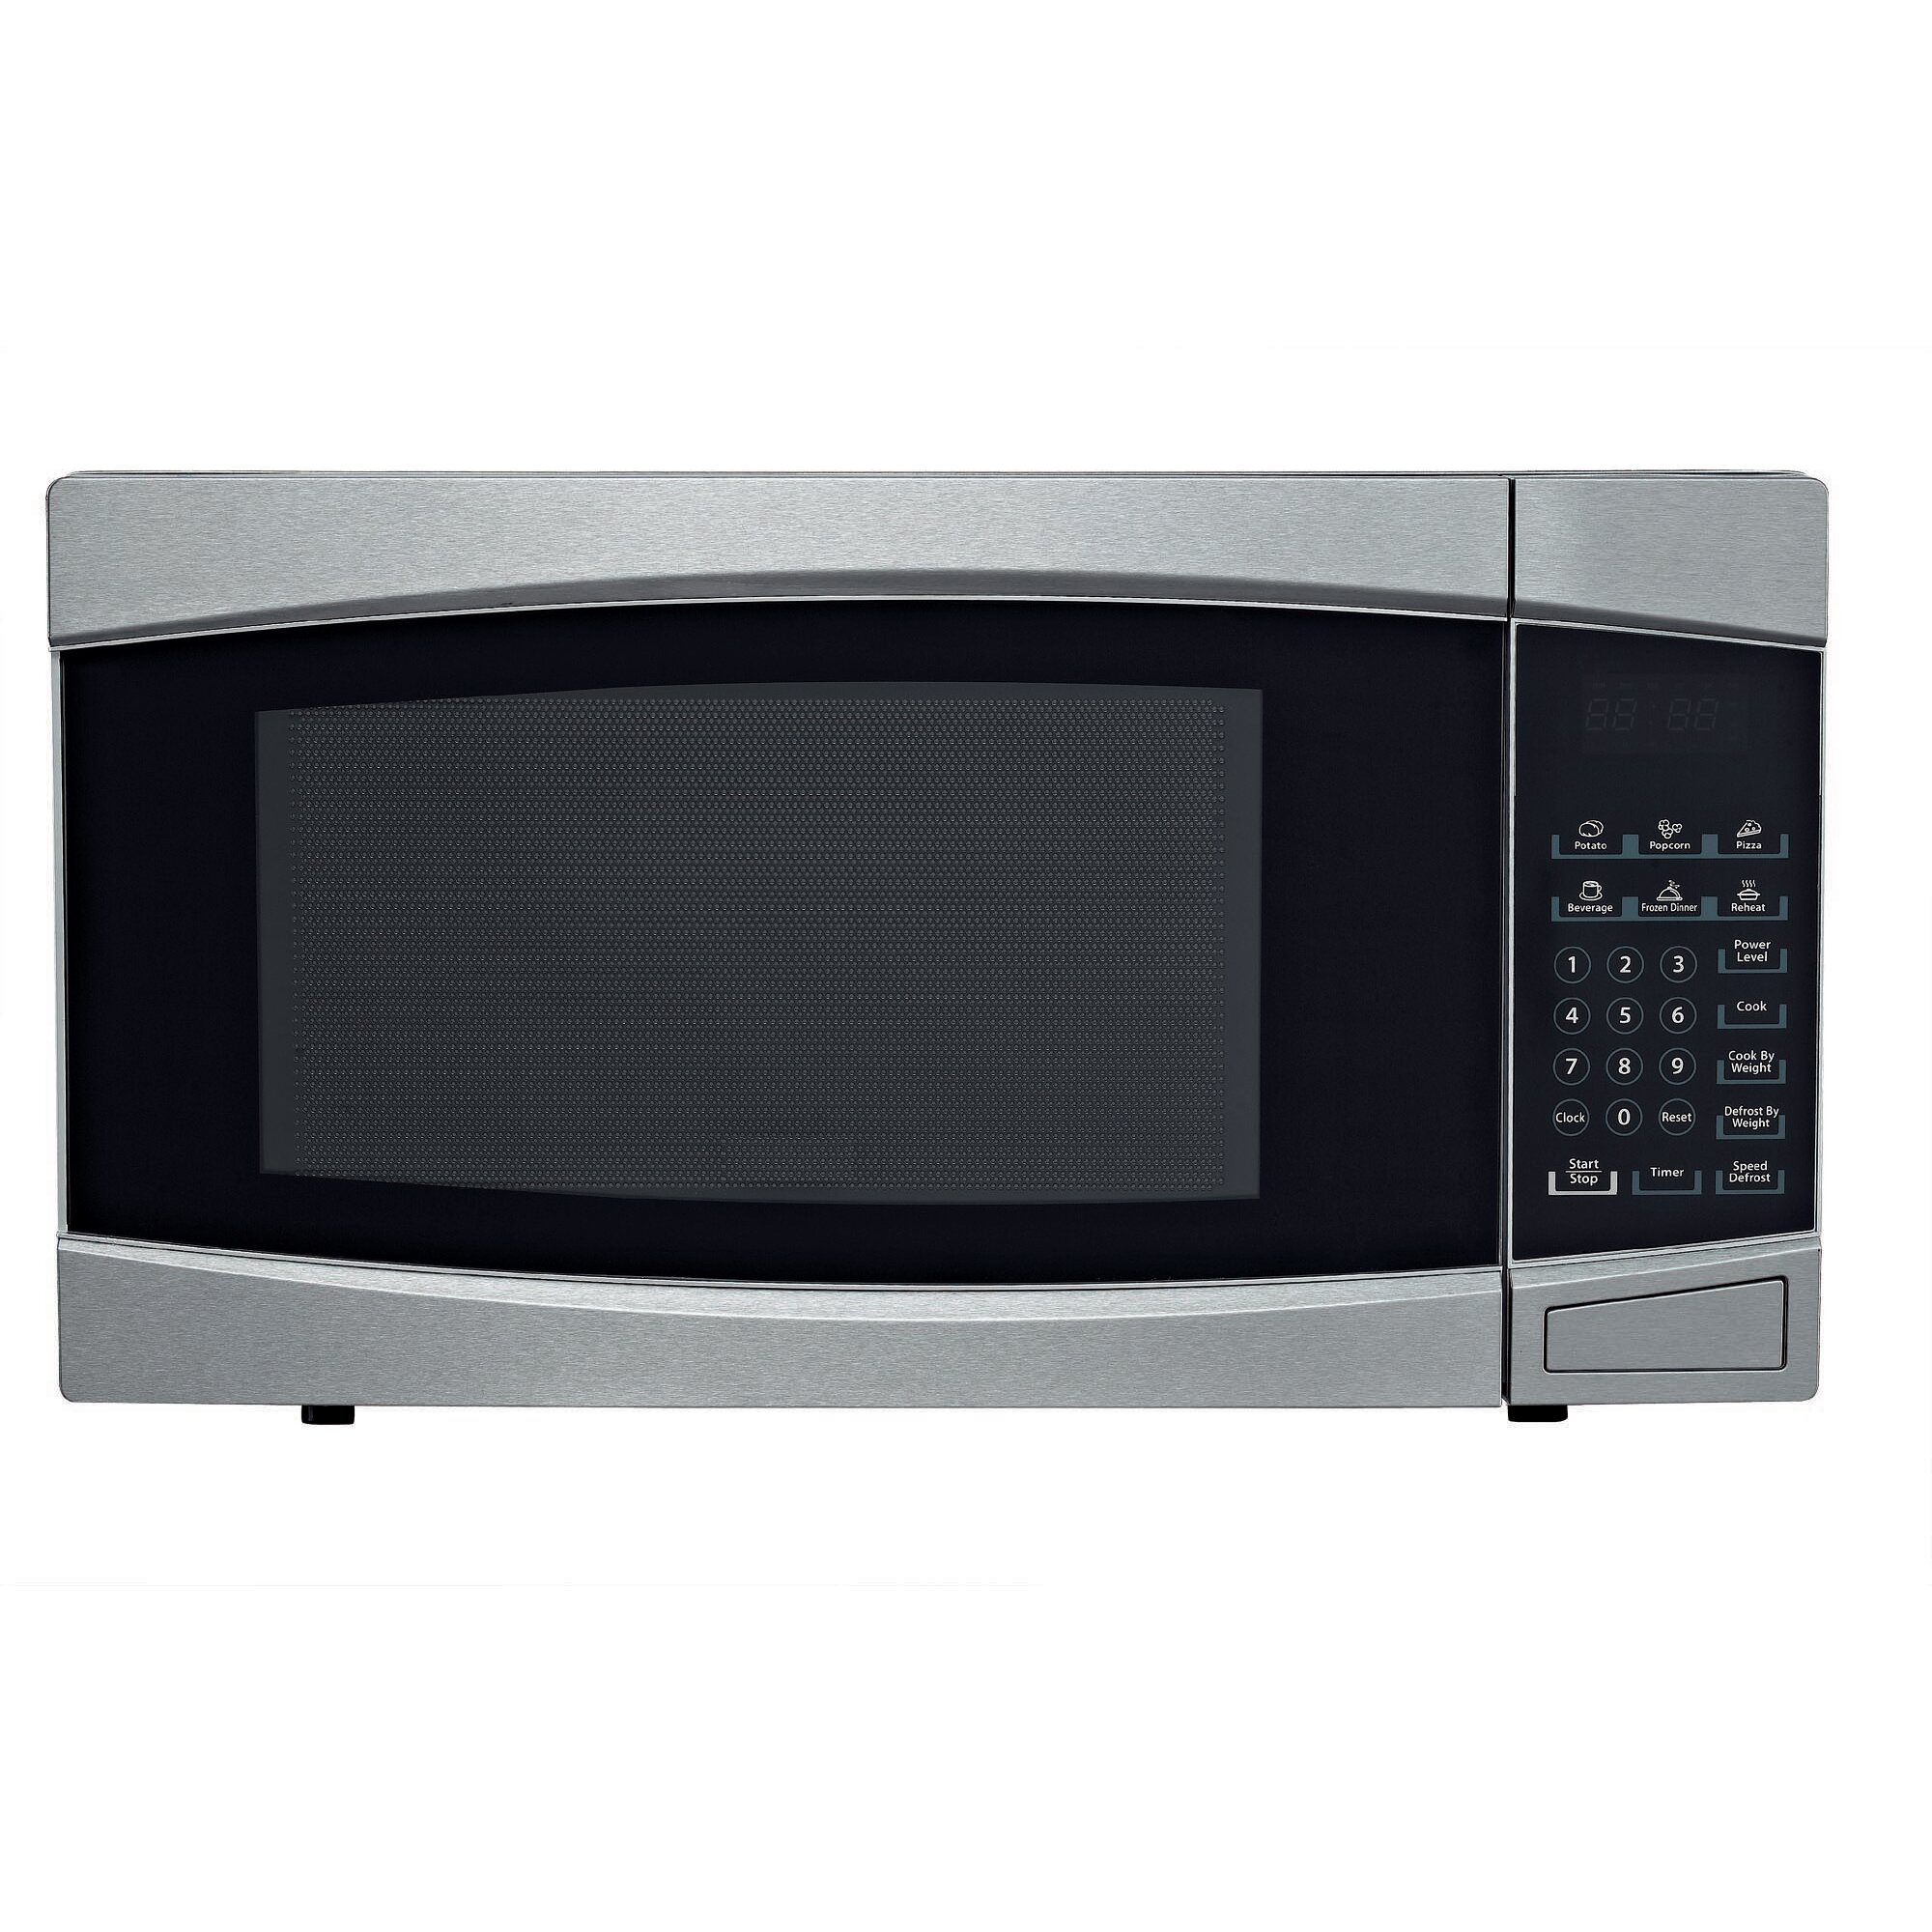 Rca Countertop Dishwasher Reviews : RCA Products 1.4 cu. ft. 1000W Countertop Microwave & Reviews ...